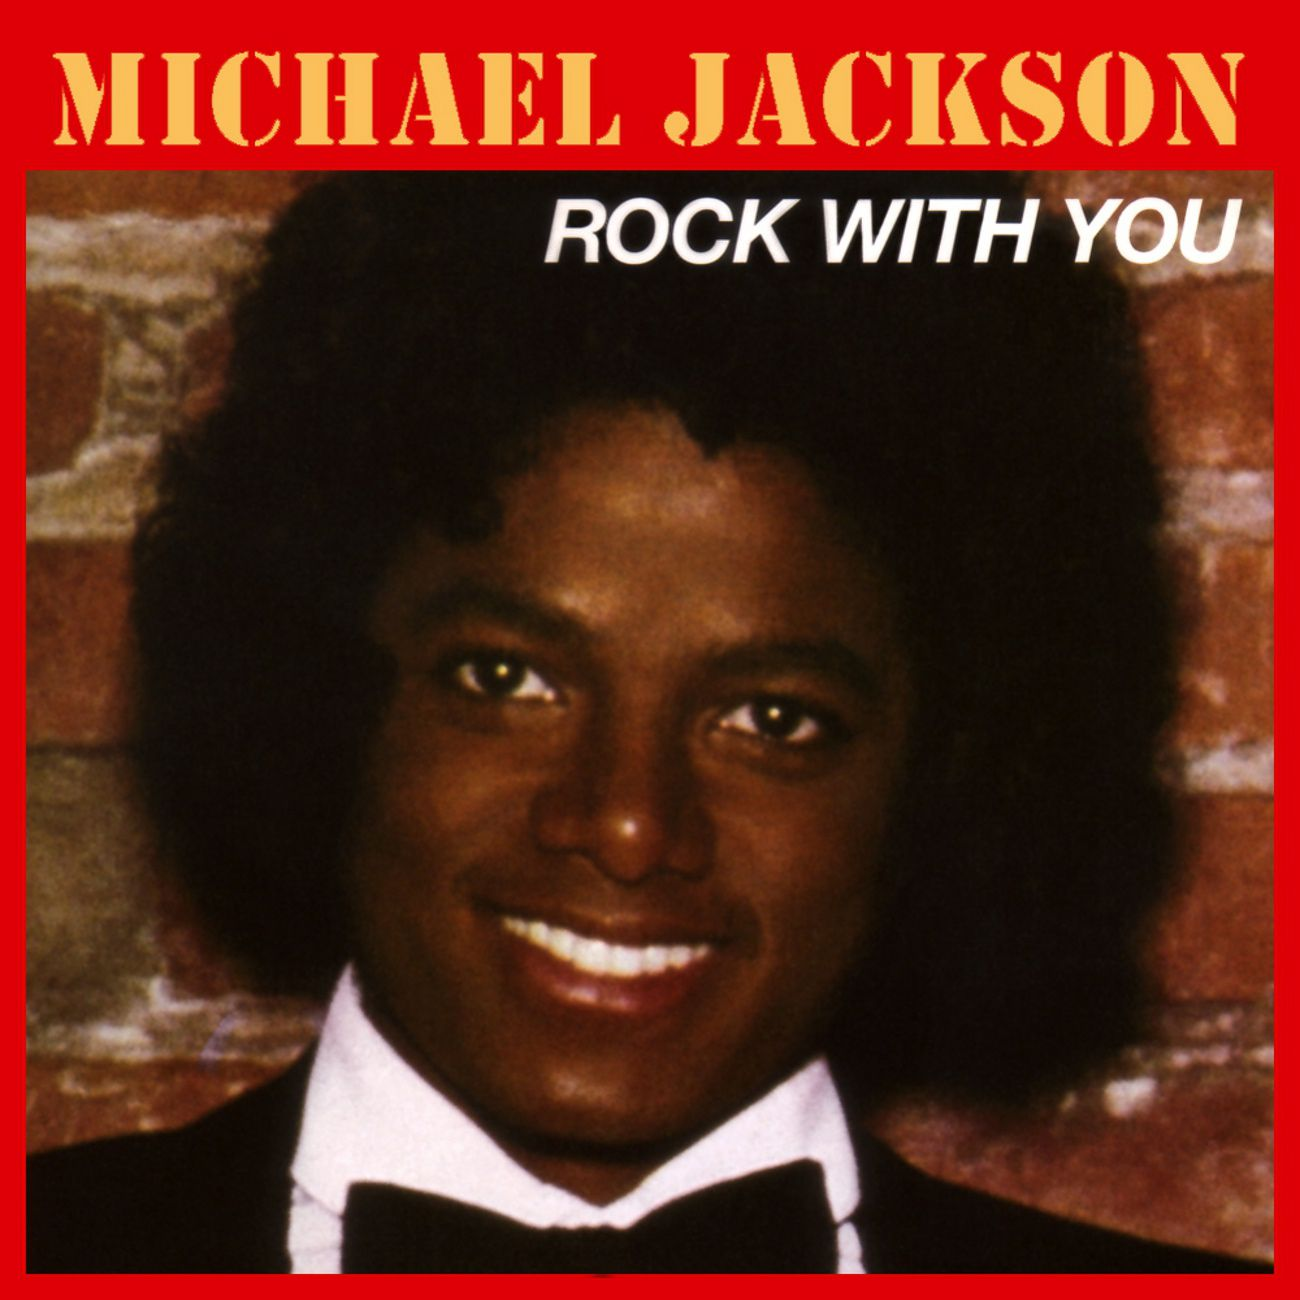 Top 10 Michael Jackson Songs of the '80s, Part 1